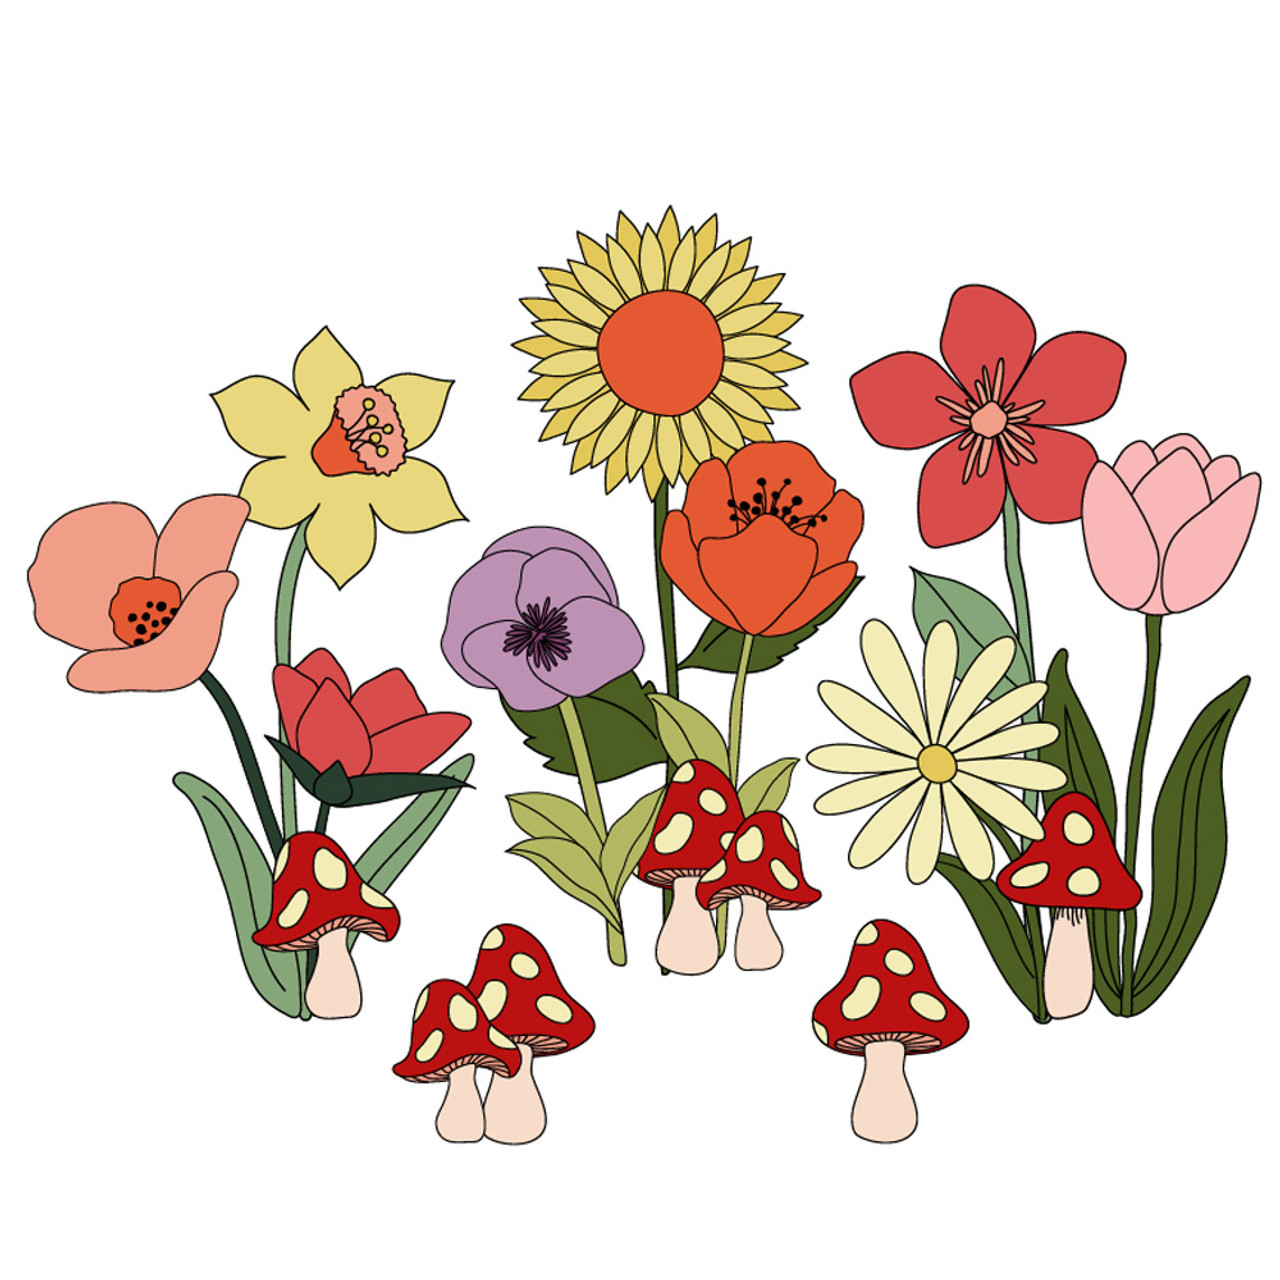 picture about Flower Cutouts Printable referred to as Yard Bash Big Cutouts - Printable